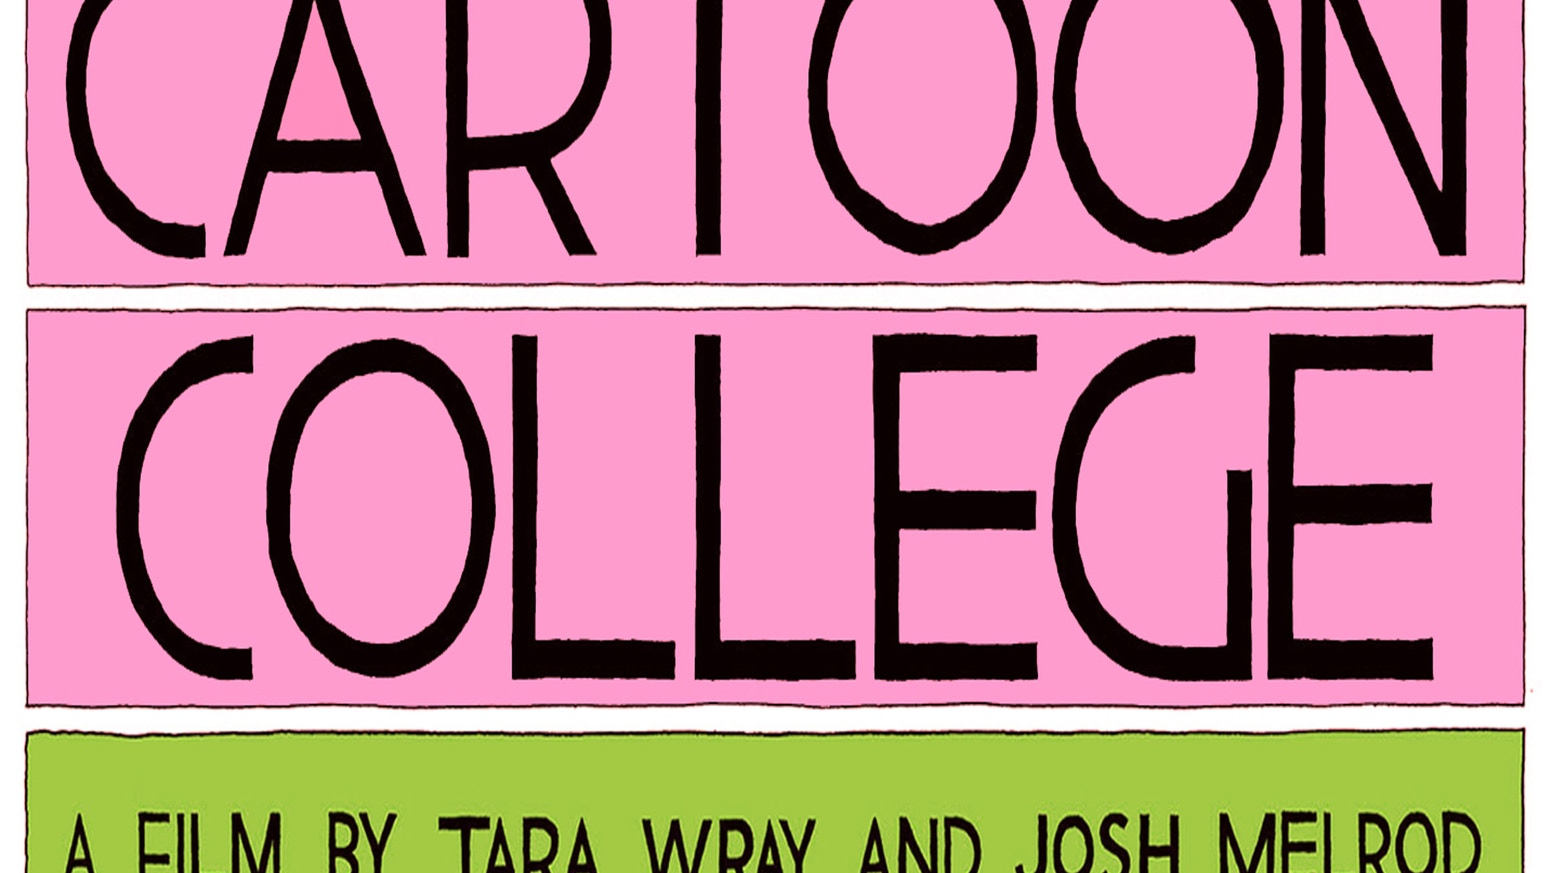 Good Grief Making Cartoon College A Documentary About Comics By Tara Wray And Josh Melrod Kickstarter